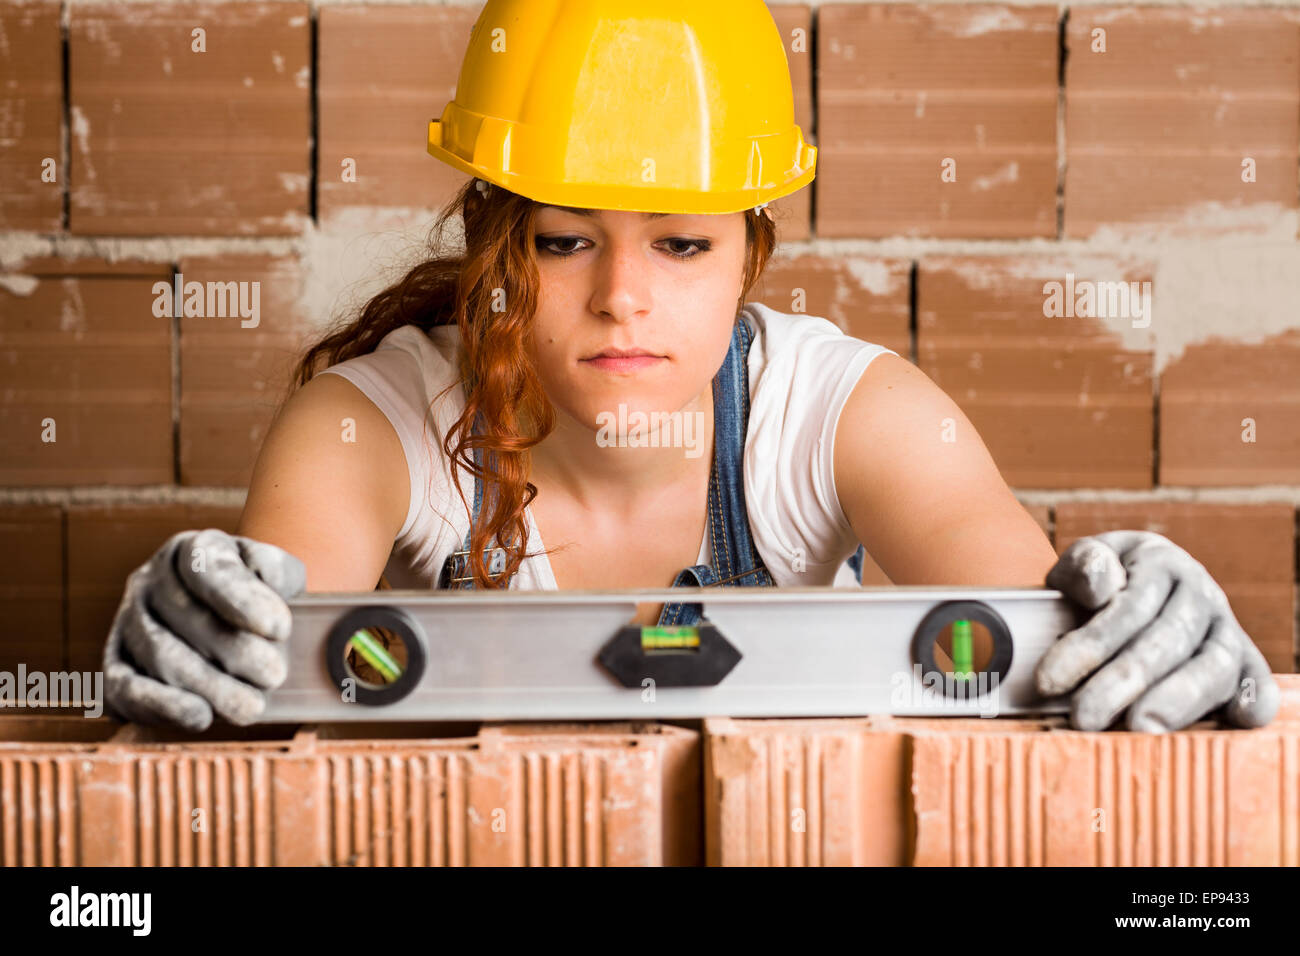 Woman Bricklayer with Helmet Holding a Spirit Level on a Brick Wall - Stock Image